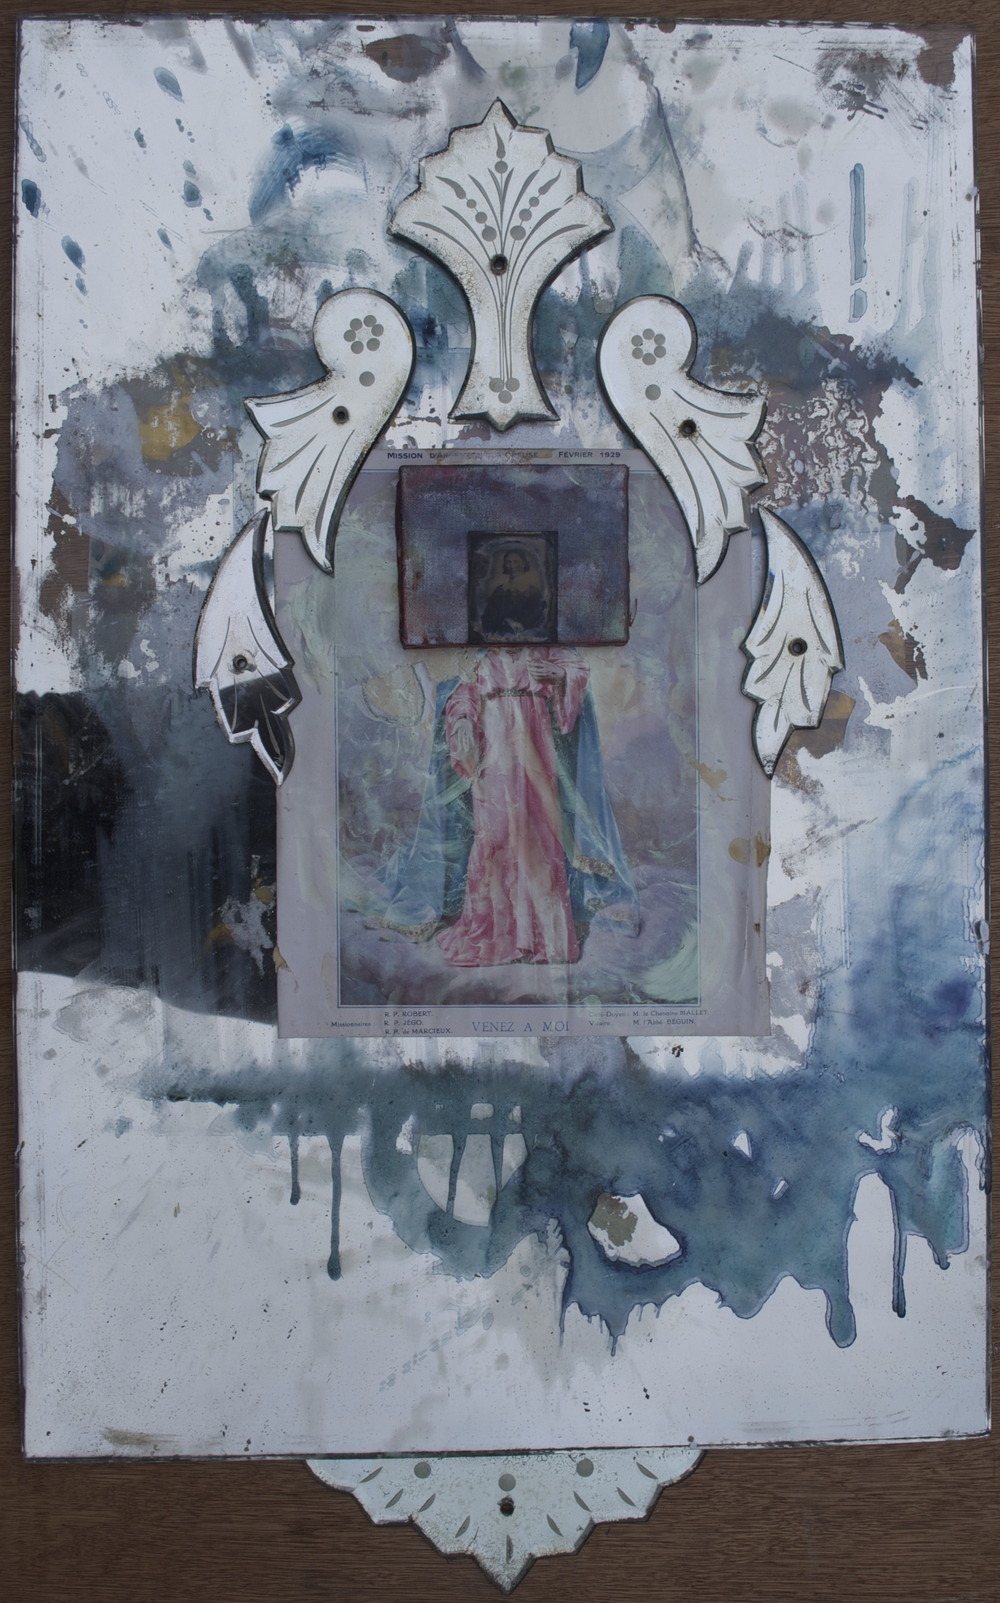 Venez a Moi (Our Lady of Immeasurable Likeness)   Avril 2015; a  crylic, acrylic on canvas, tin type, glass, collage on antique mirror; 91 x 55.5 cm   Copyright © Tennyson Woodbridge, 1963 to present